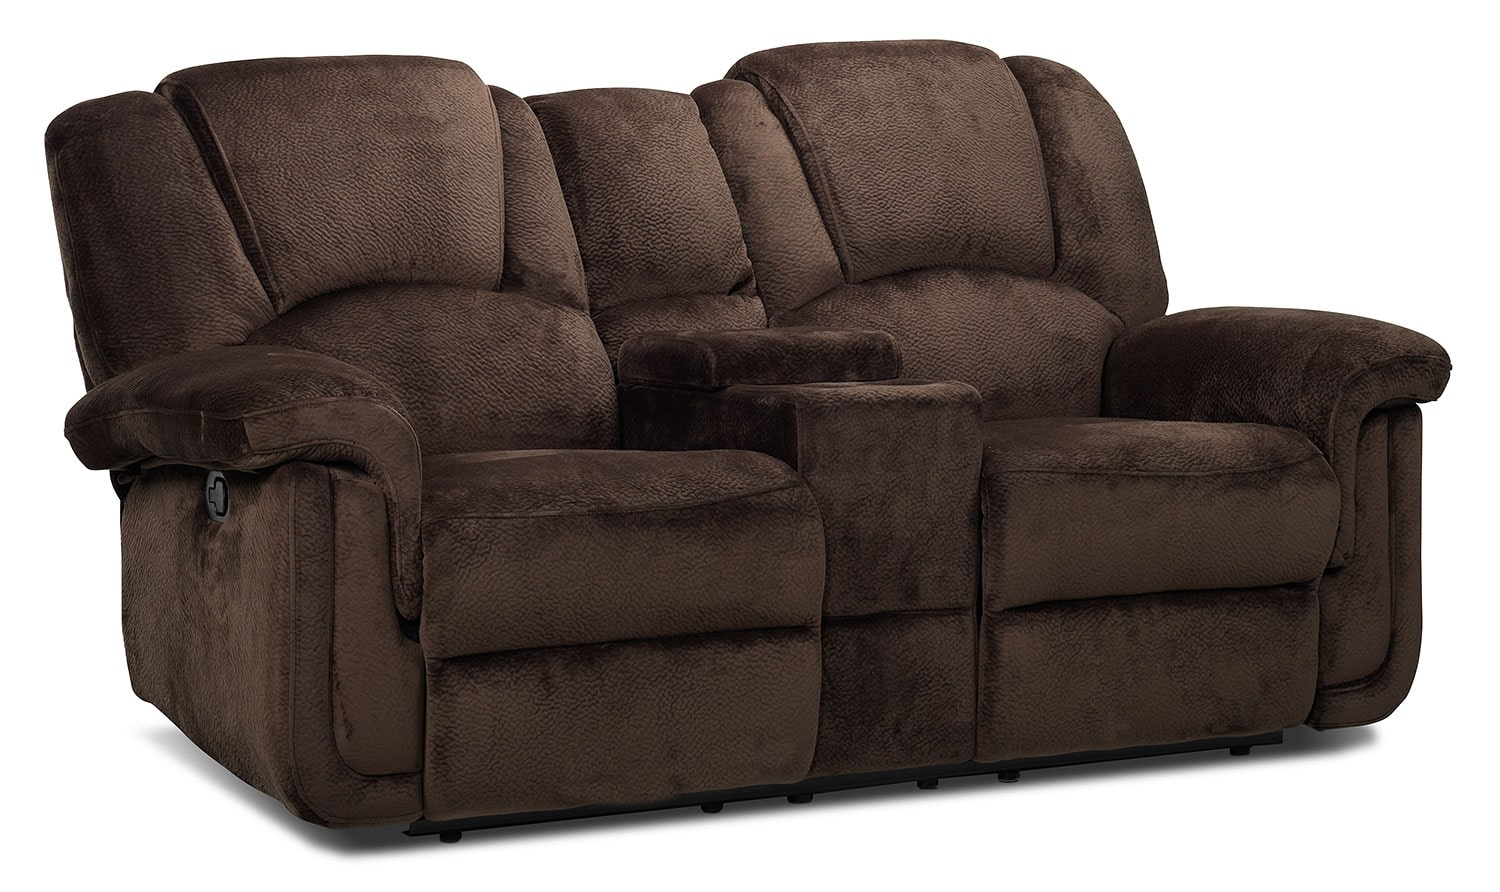 Living Room Furniture - Pitch Reclining Loveseat w/ Console - Espresso